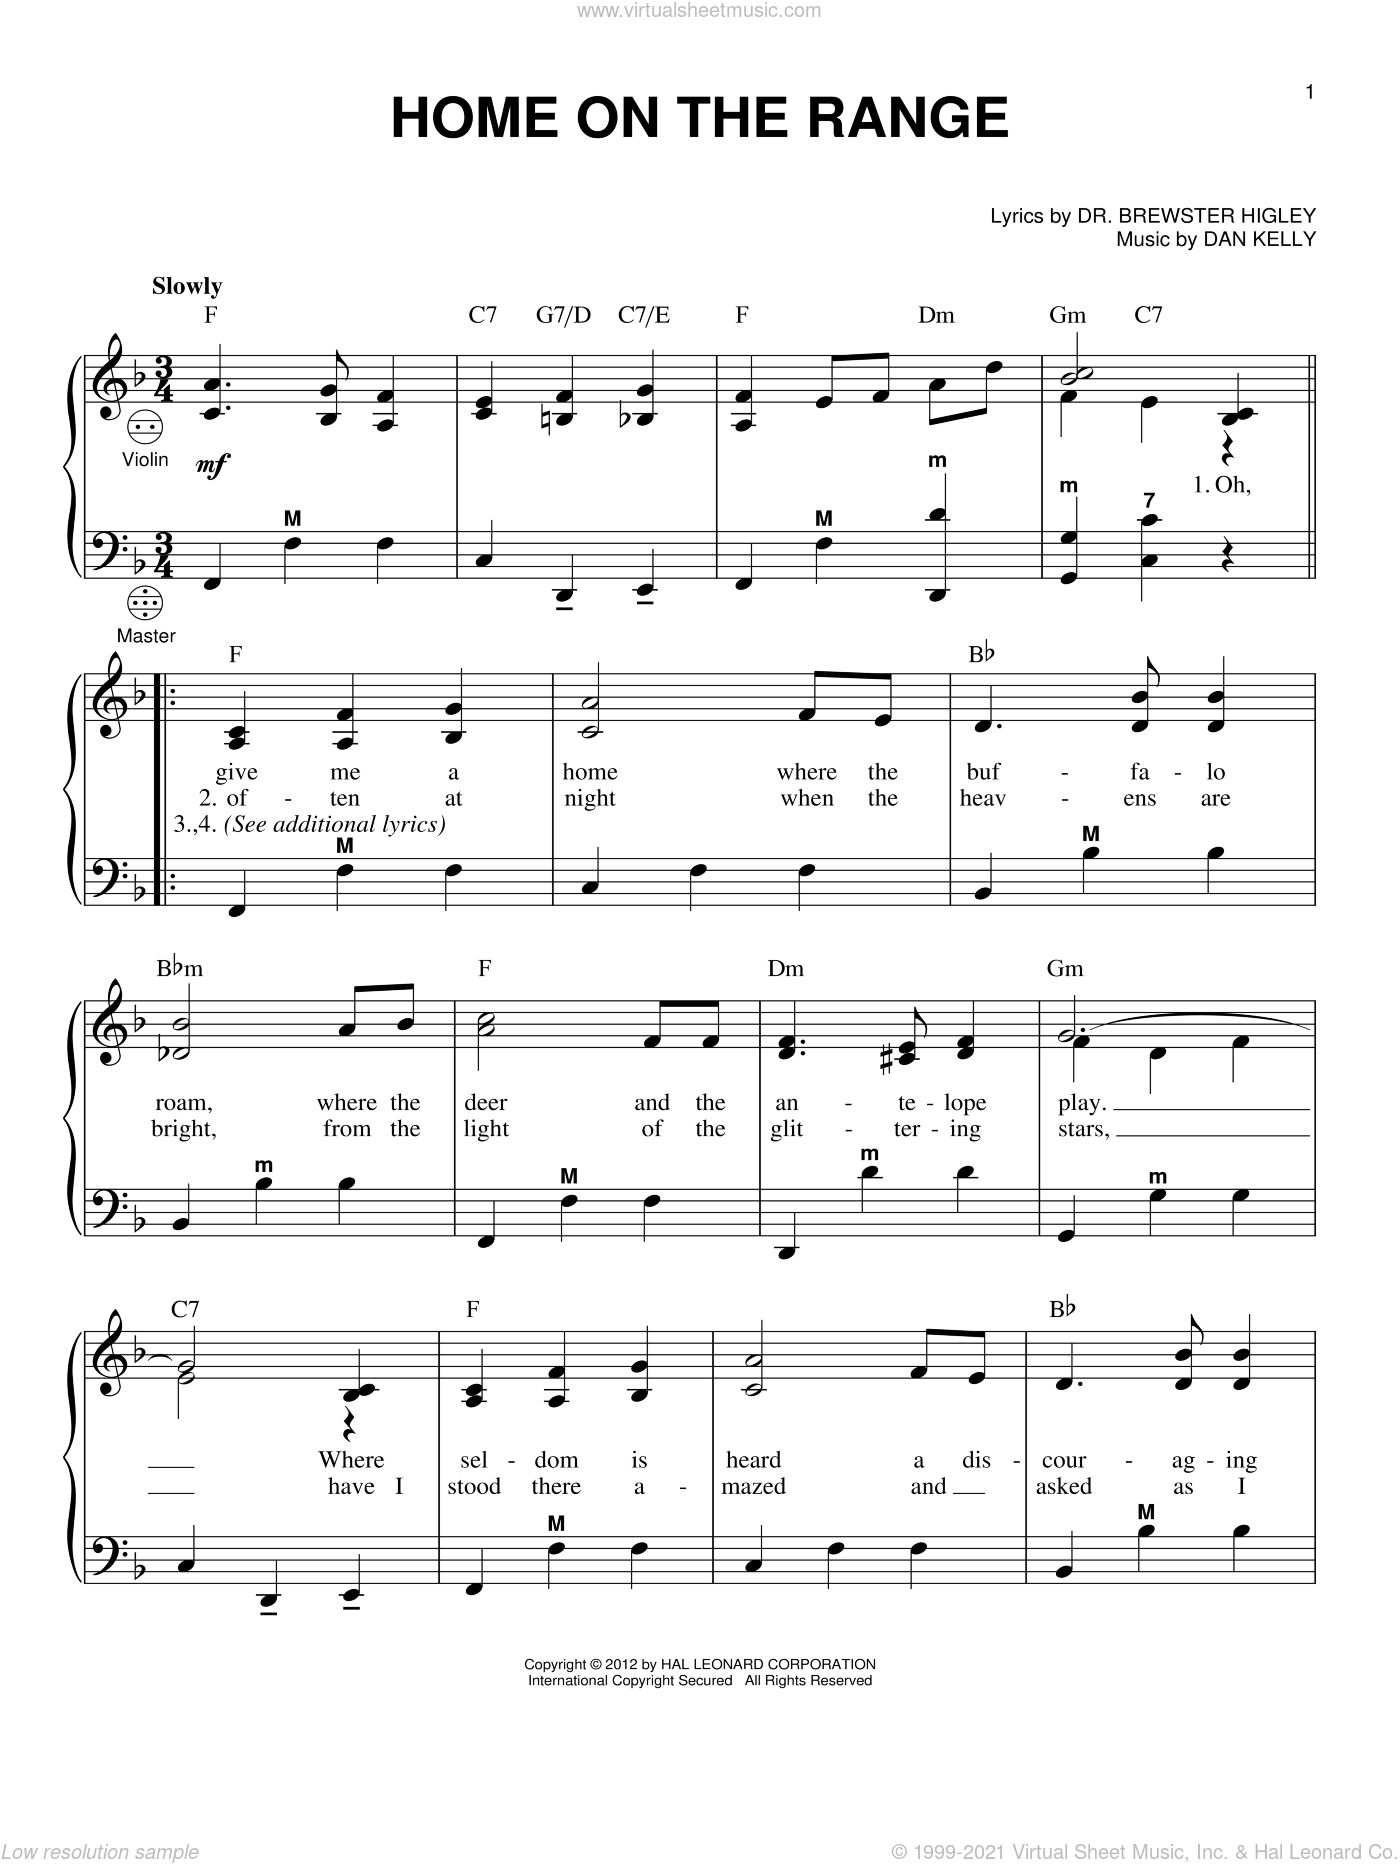 Home On The Range sheet music for accordion by Gary Meisner, Dan Kelly and Dr. Brewster Higley, intermediate skill level